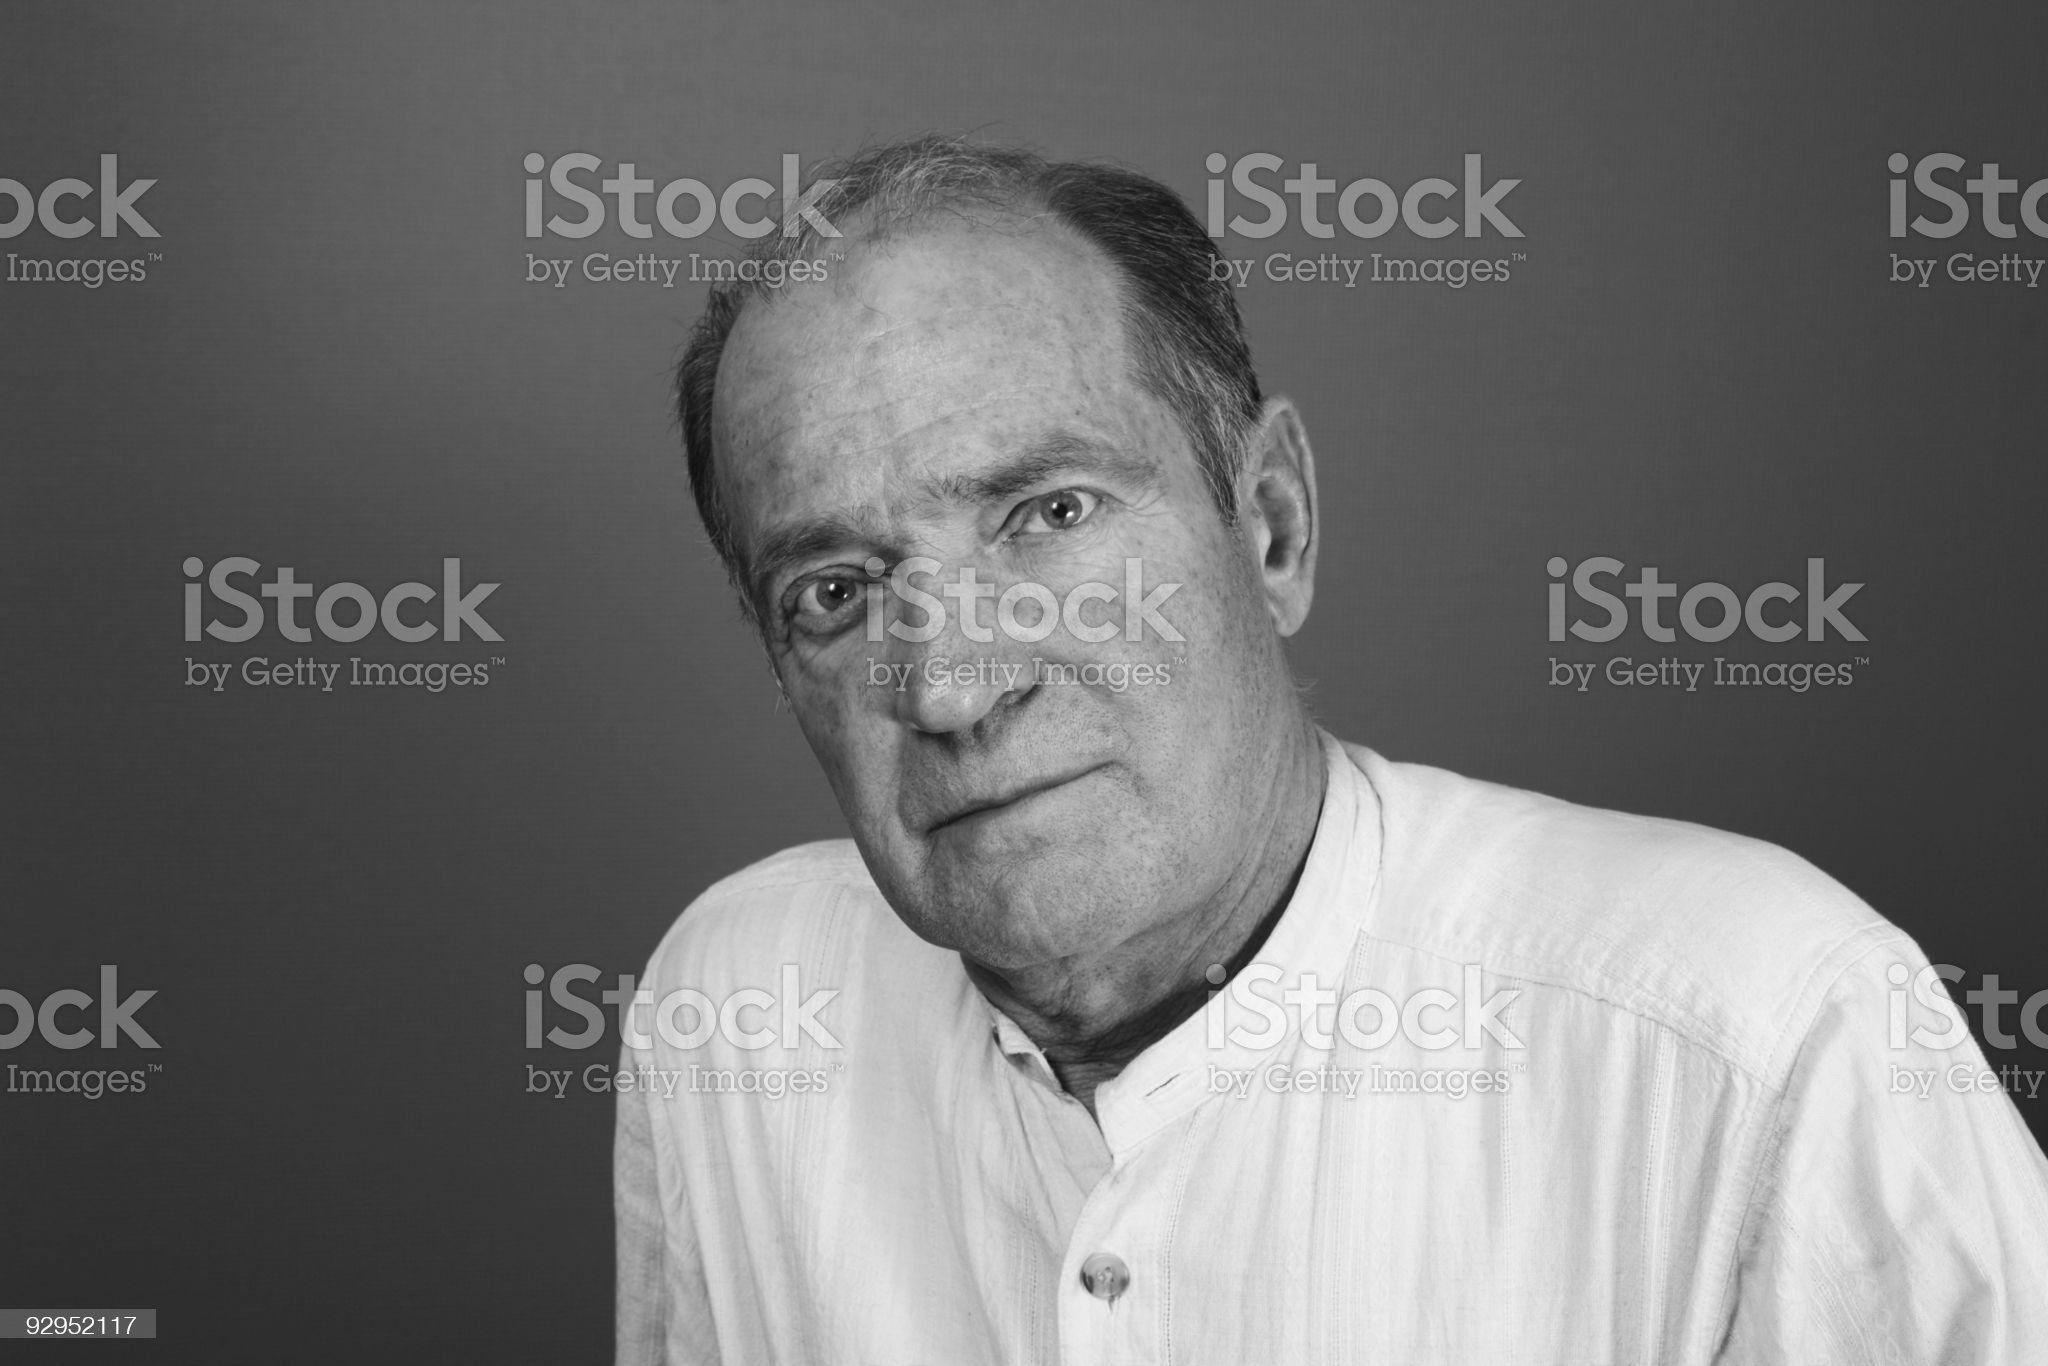 mature man black and white portrait royalty-free stock photo